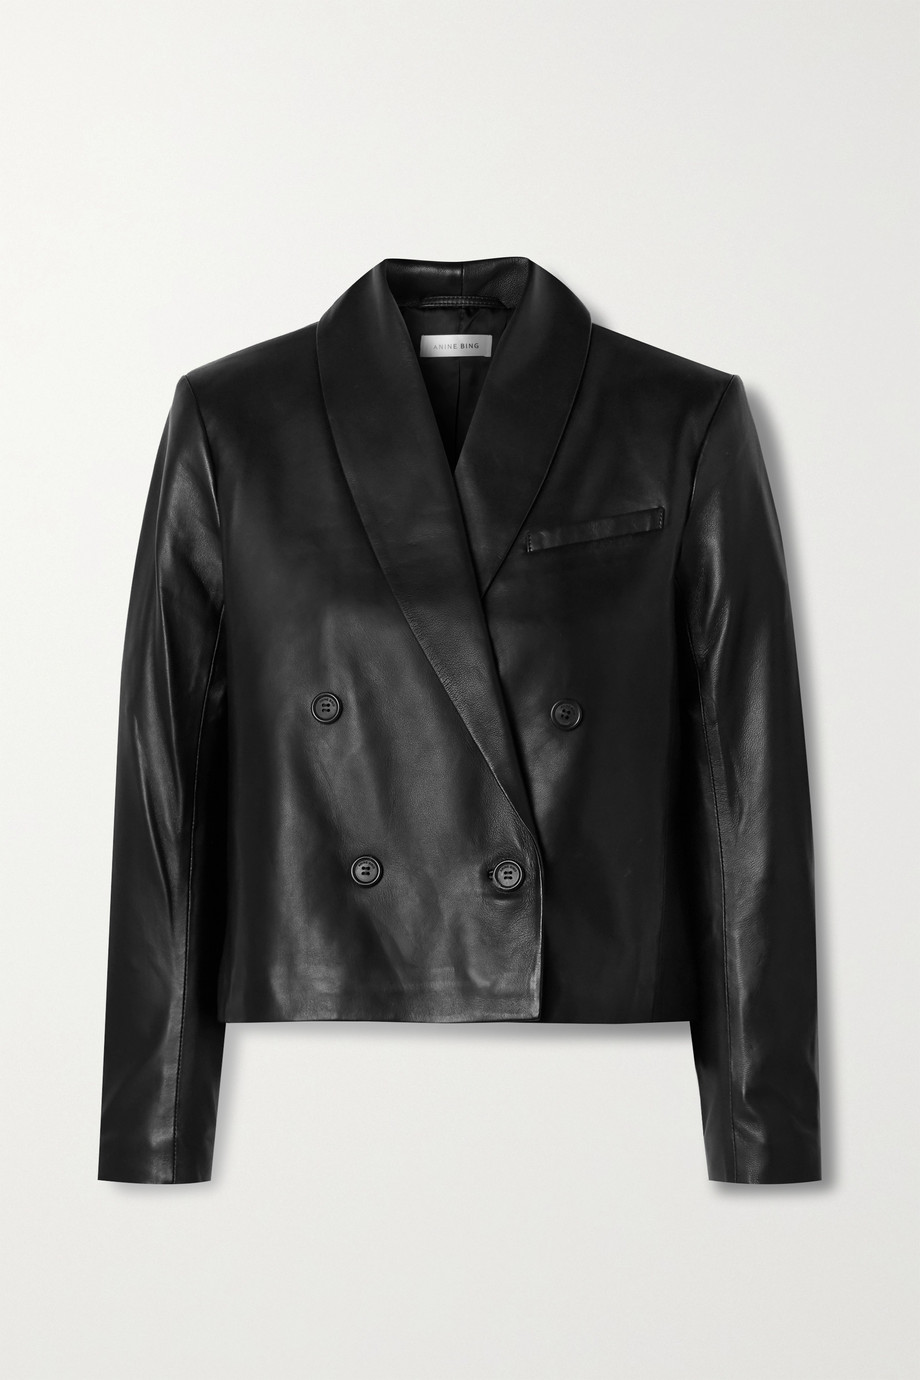 Anine Bing Mae double-breasted leather blazer